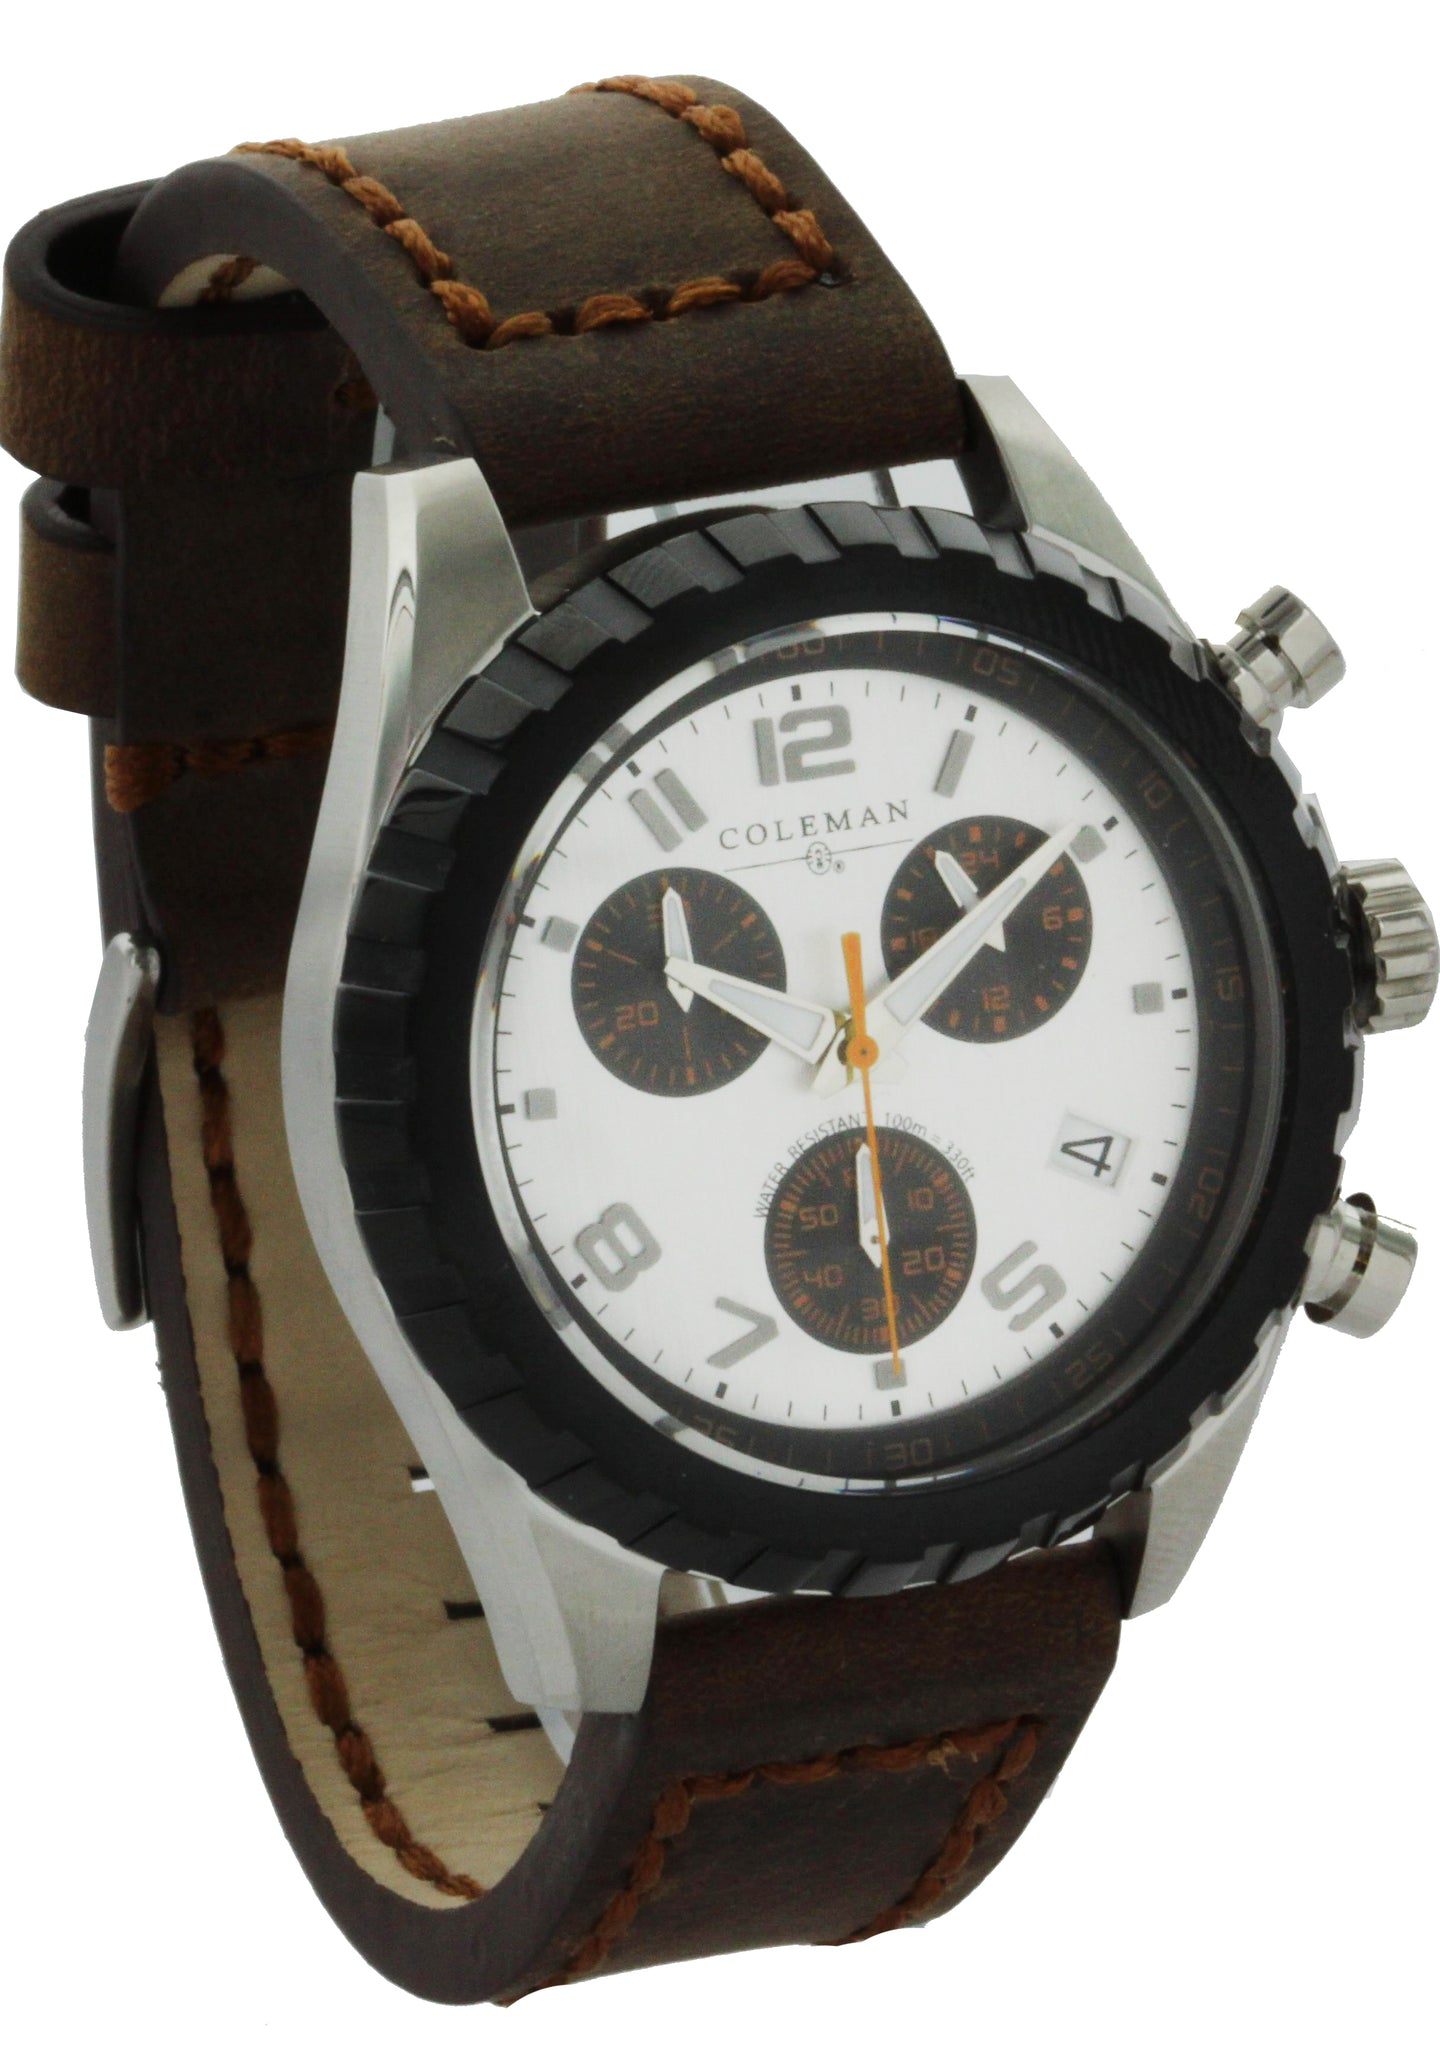 Stainless Steel Chronograph with date Men's Watch COL7107